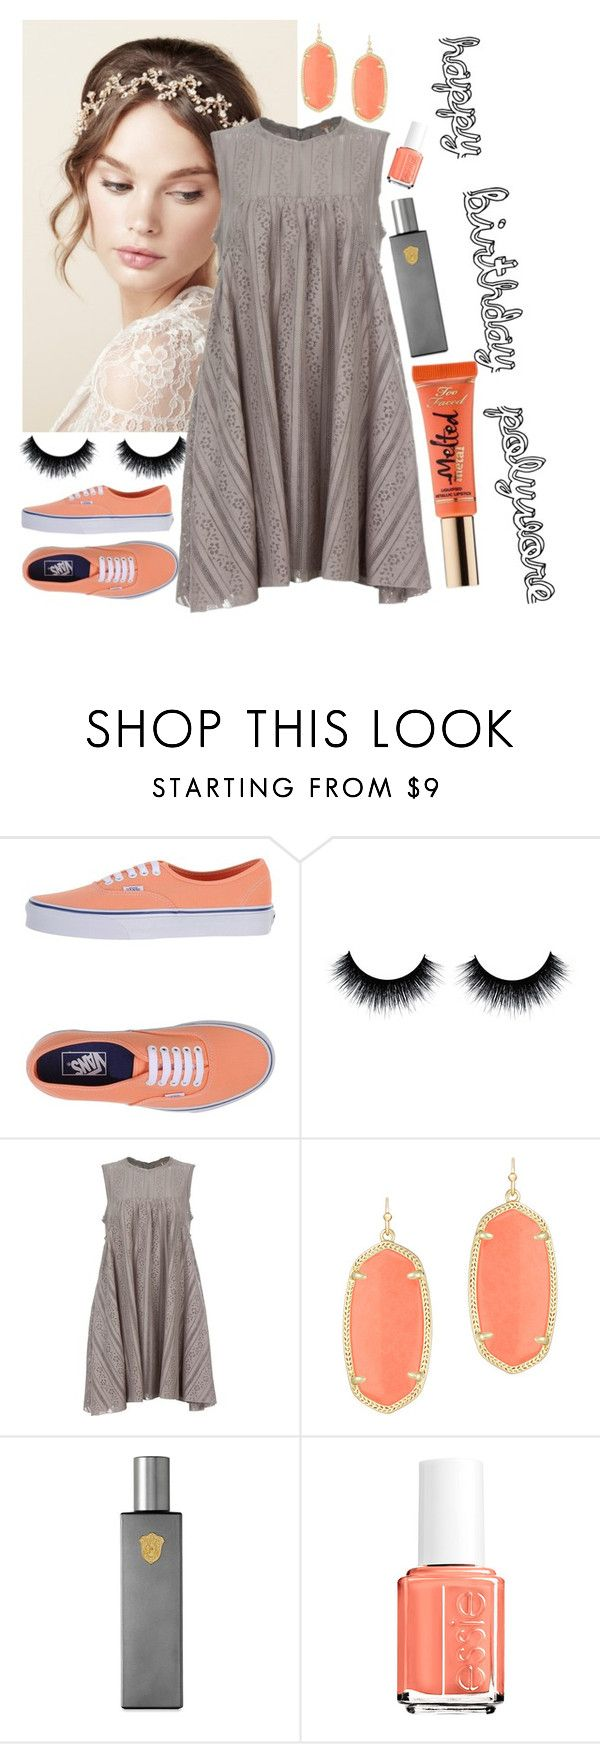 """""""coral cake"""" by soccer1938 ❤ liked on Polyvore featuring Vans, Free People, Kendra Scott, Régime des Fleurs, Essie, women's clothing, women, female, woman and misses"""